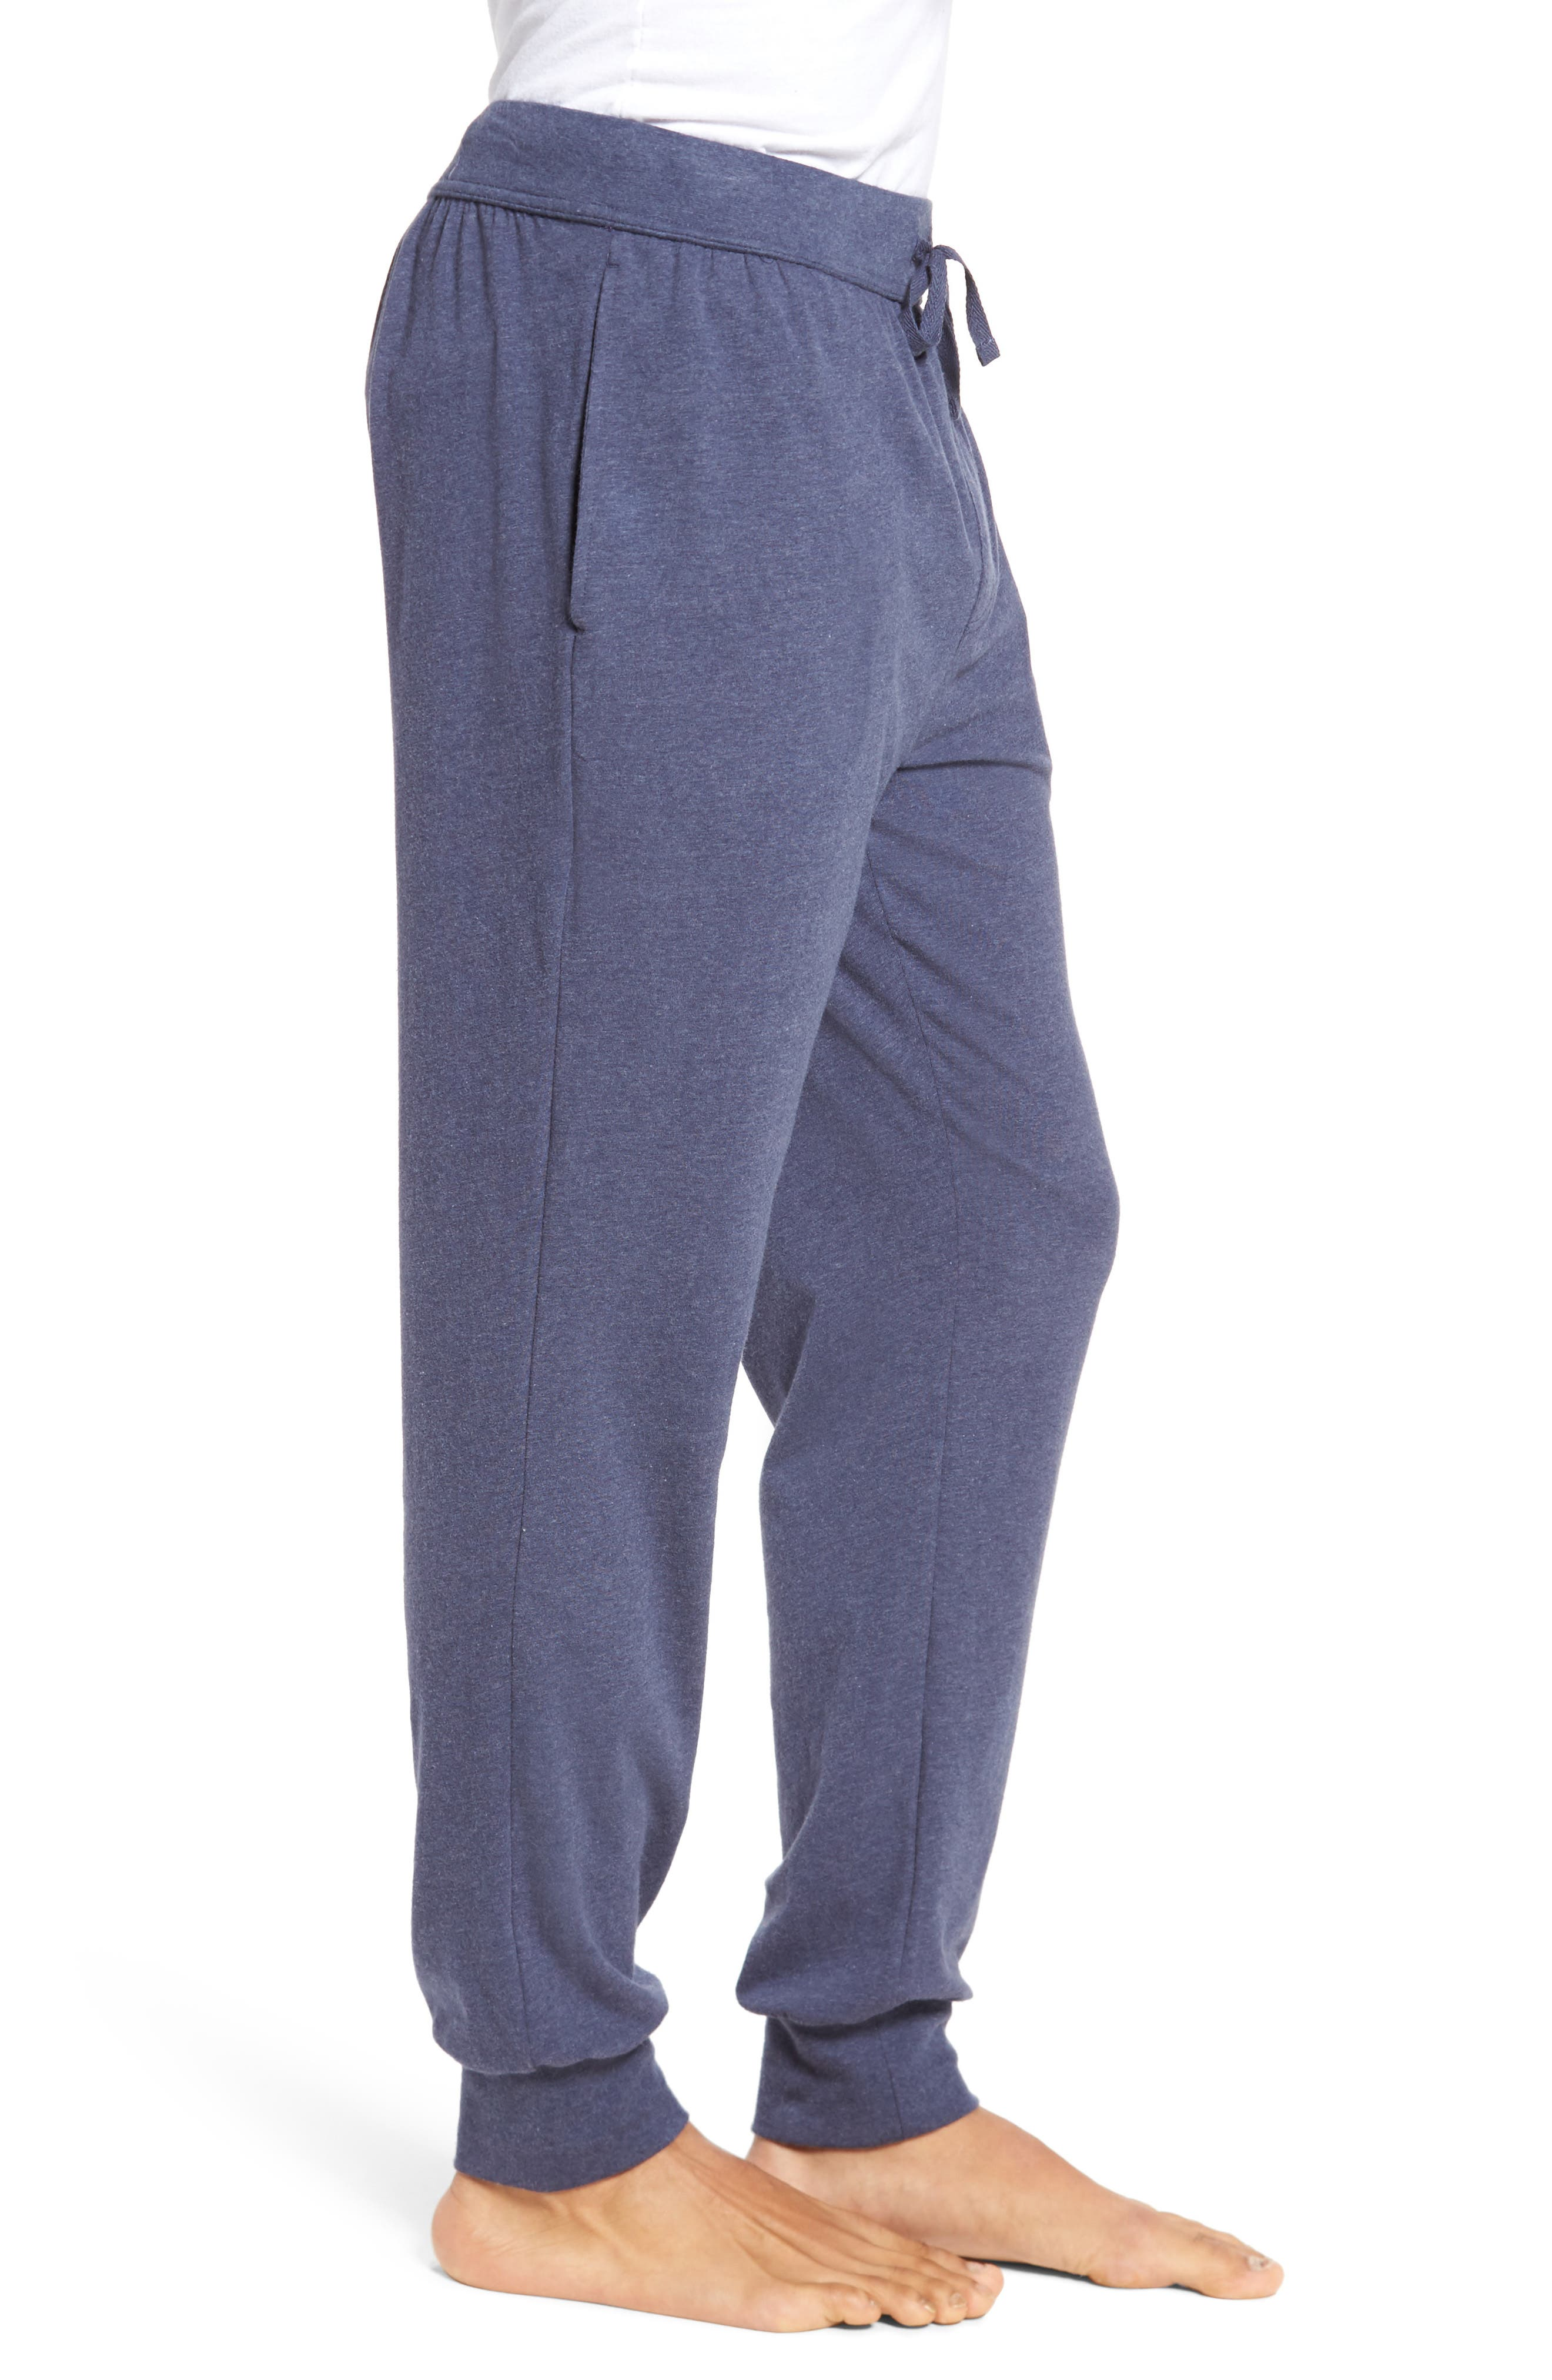 Stretch Cotton Lounge Pants,                             Alternate thumbnail 3, color,                             Blue Denim